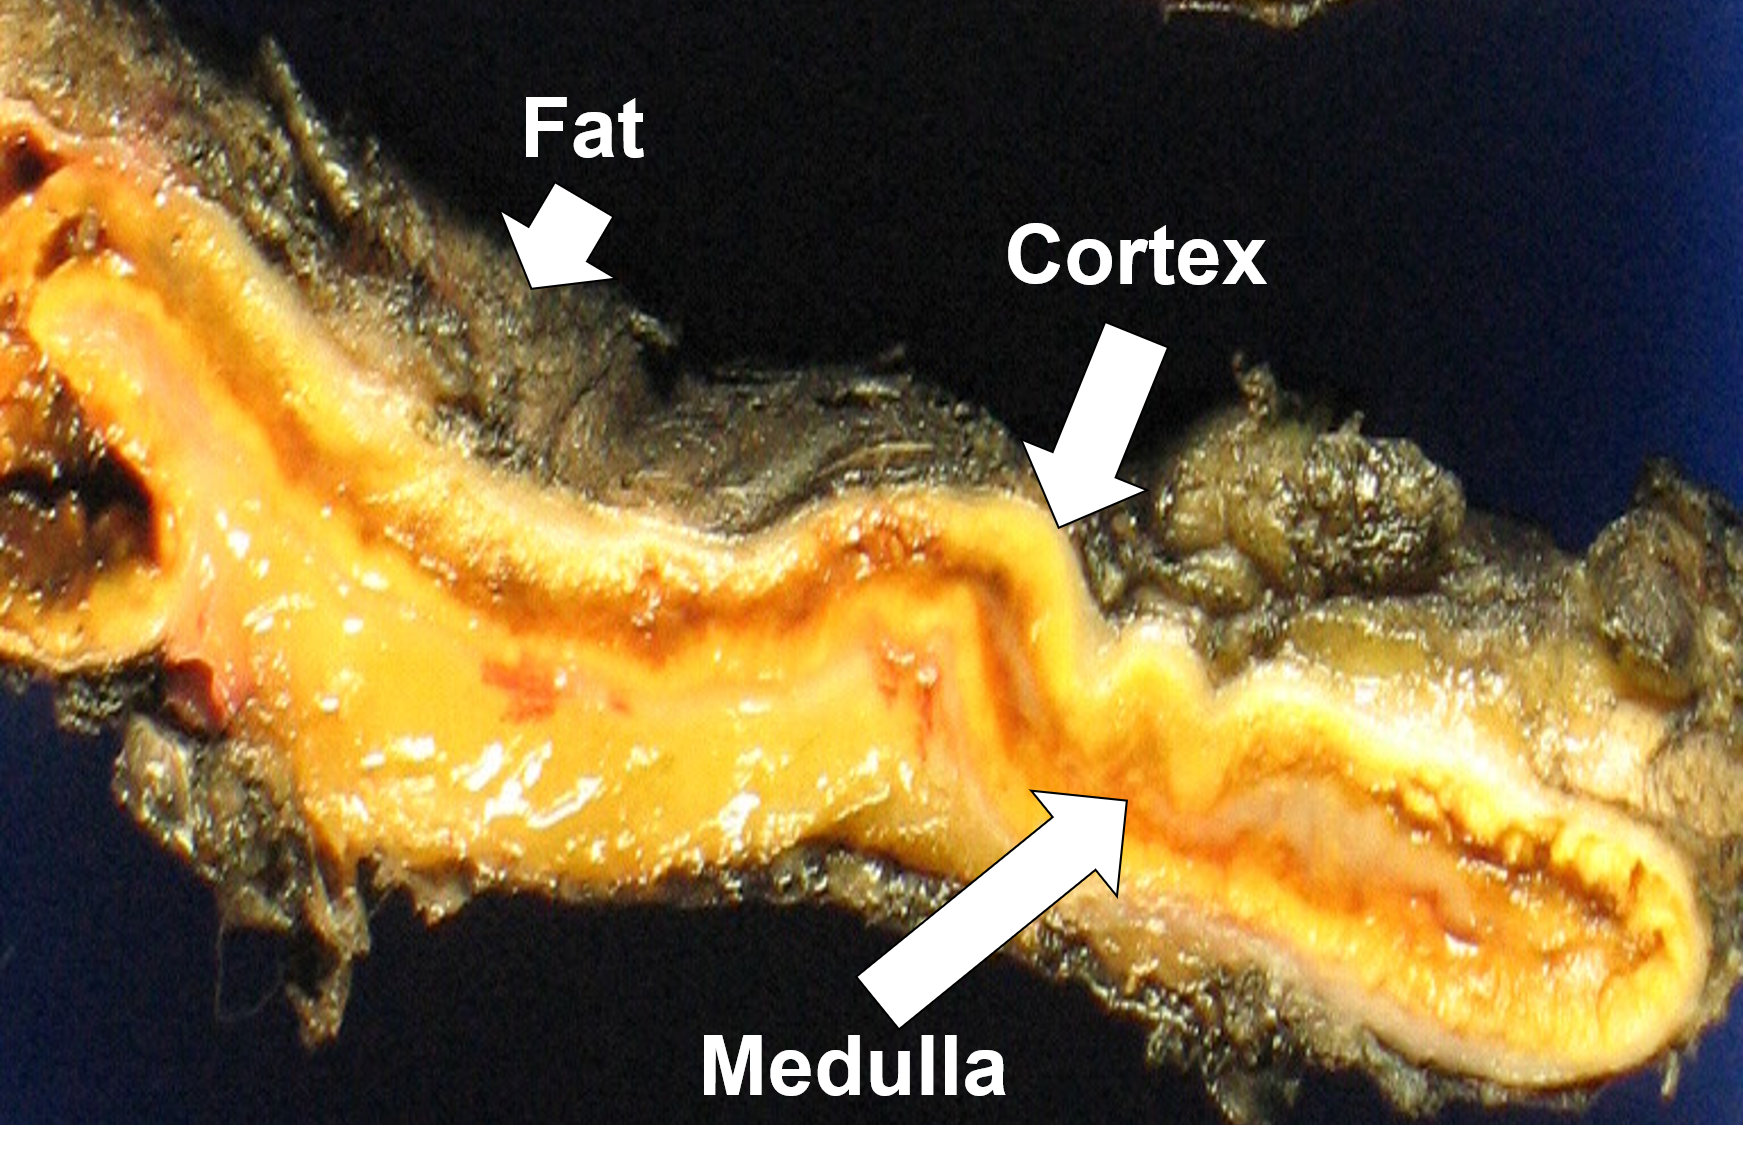 Transection of a portion of normal adrenal tissue displaying the adrenal cortex (yellow), medulla (brownish), and surrounding fat